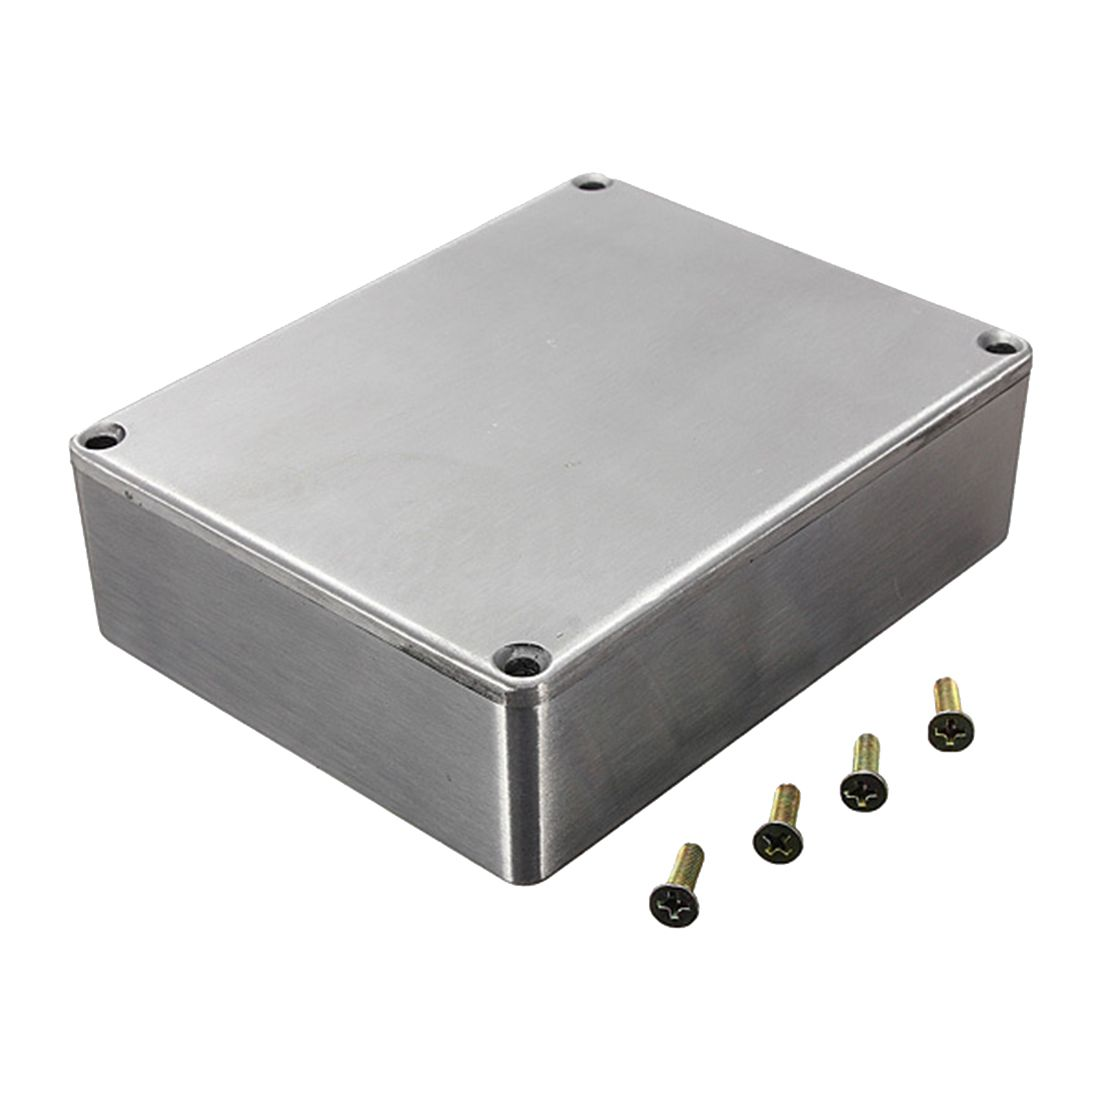 Diecast Aluminium Electronics Project Box Case Enclosure Instrument Waterproof, Standard 1590B 112X60x31mm 1 piece free shipping small aluminium project box enclosures for electronics case housing 12 2x63mm